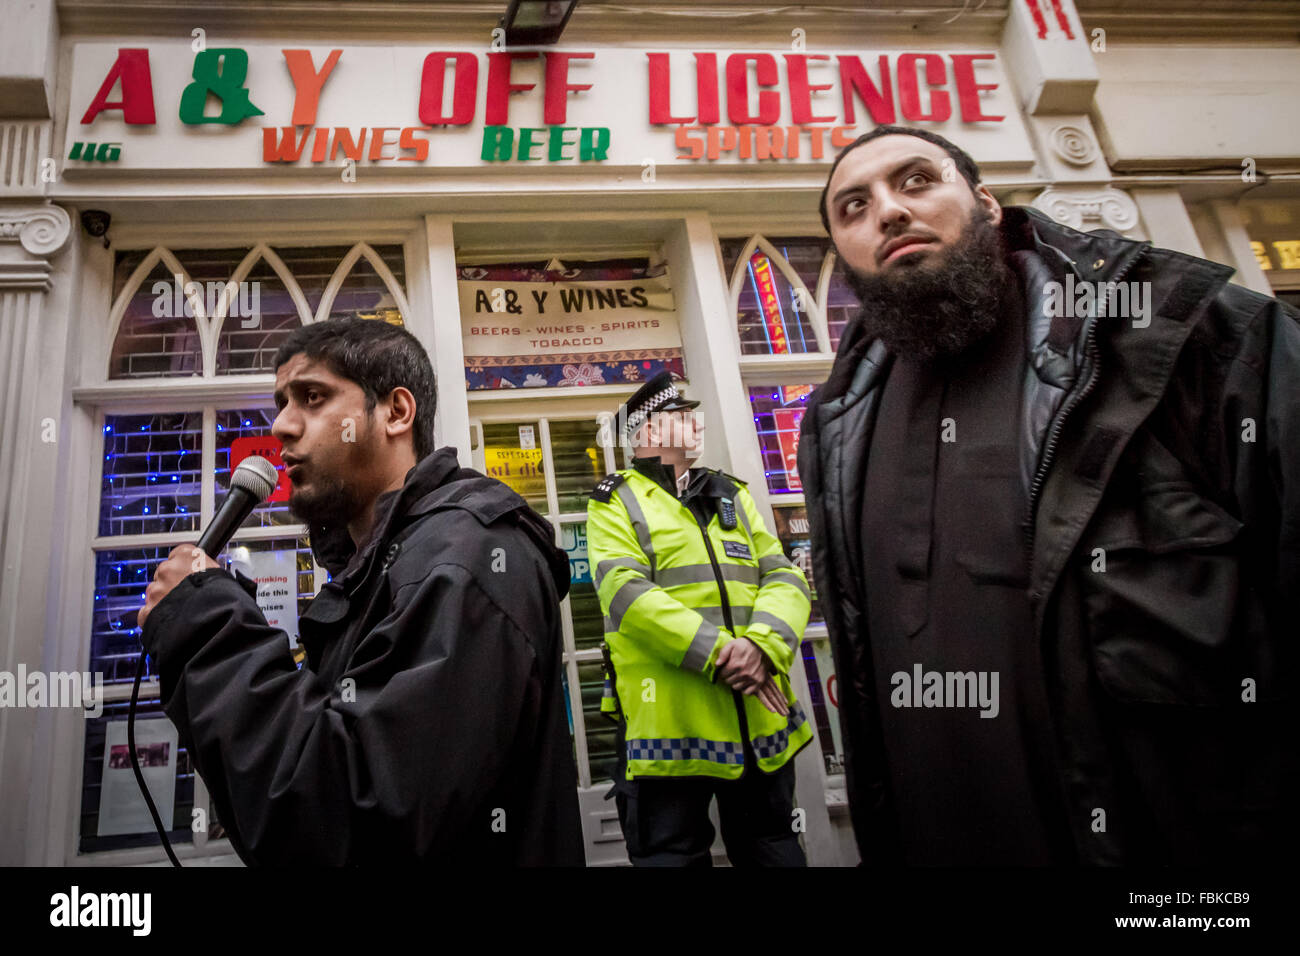 FILE IMAGES: London, UK. 13th Dec, 2013. File Images from 13-12-2013: Mohammed Reza Haque (Right), 35, known as - Stock Image